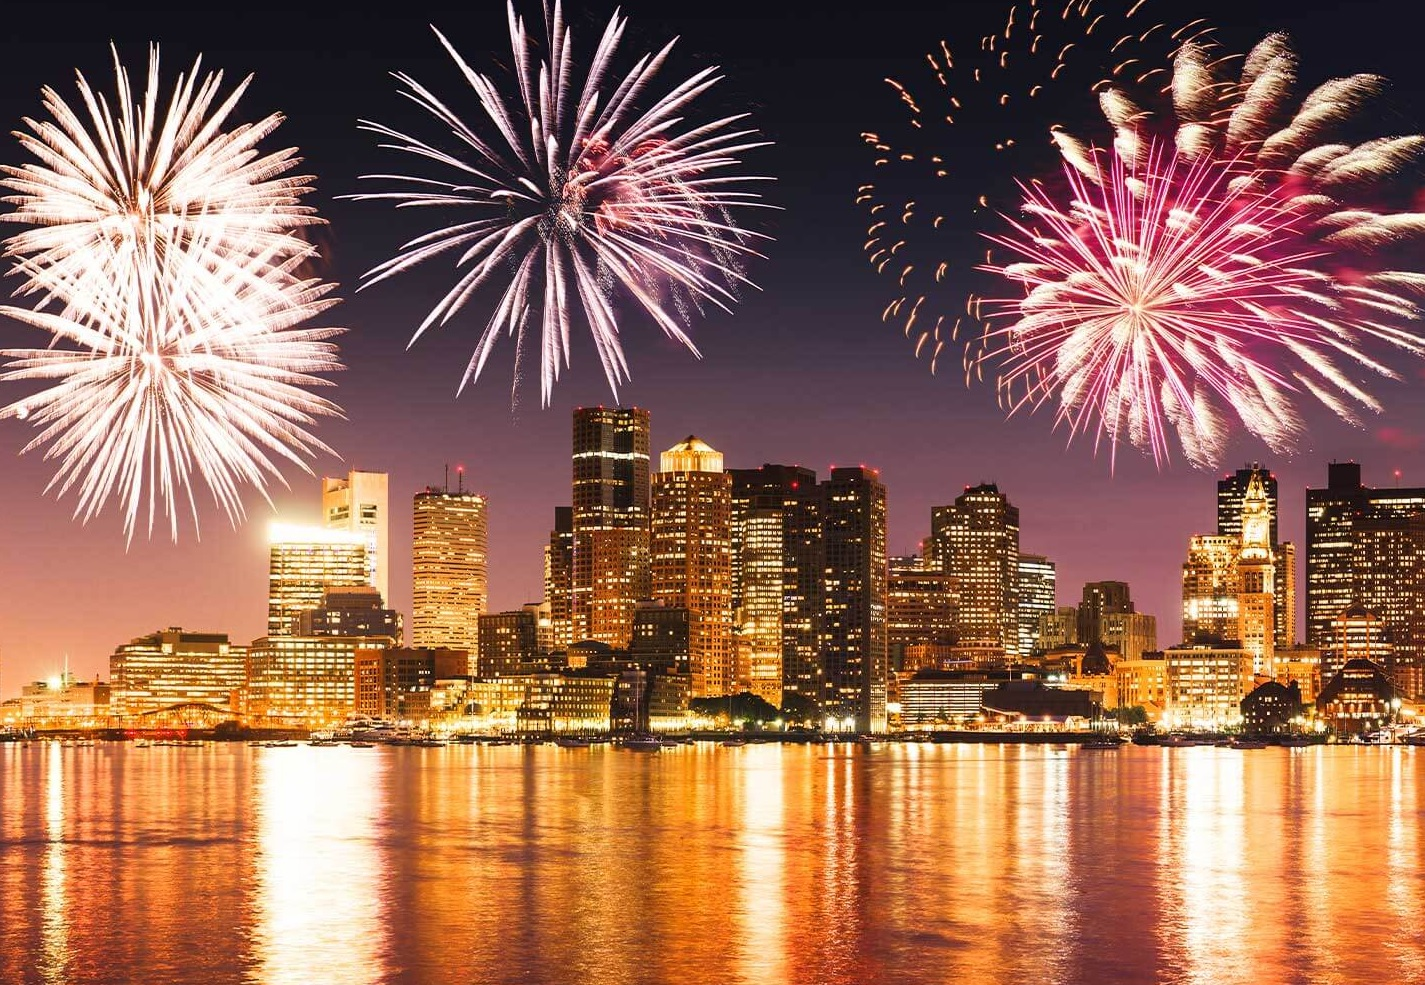 Where to look at the fireworks in Boston on the 4th of July